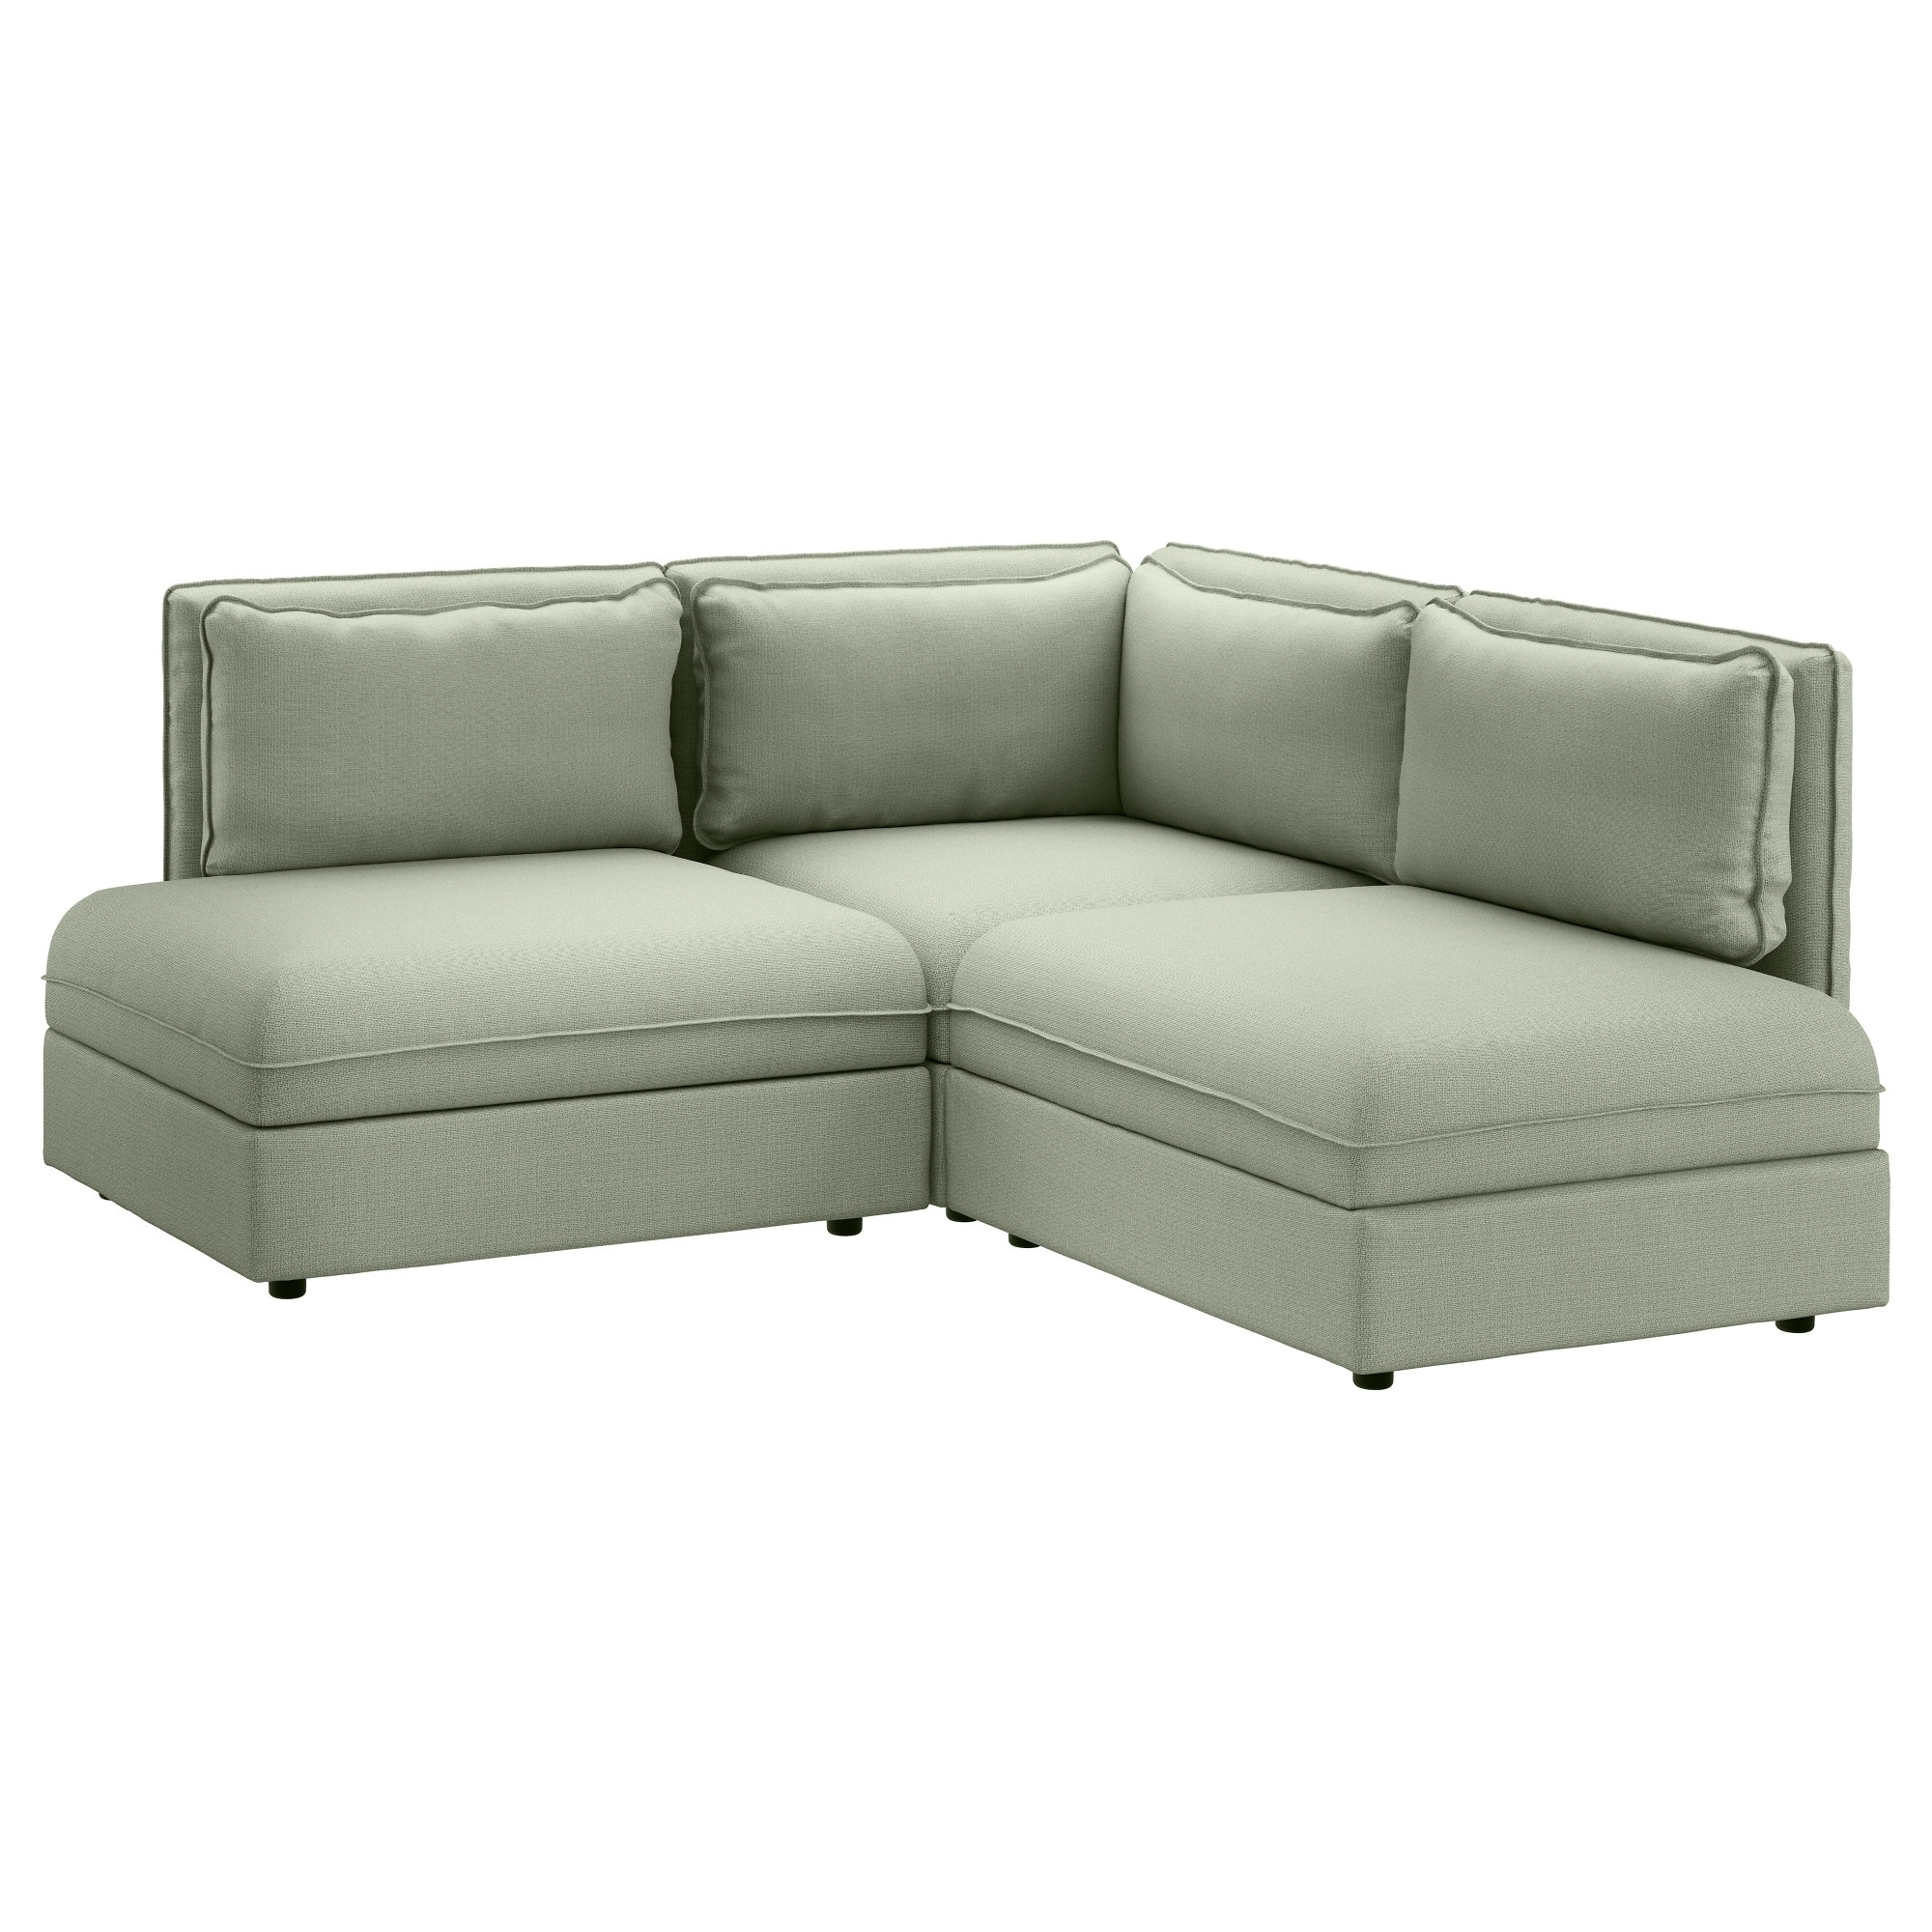 Vallentuna Sectional, 2 Seat – Hillared Green – Ikea Inside Favorite Jacksonville Nc Sectional Sofas (View 19 of 20)